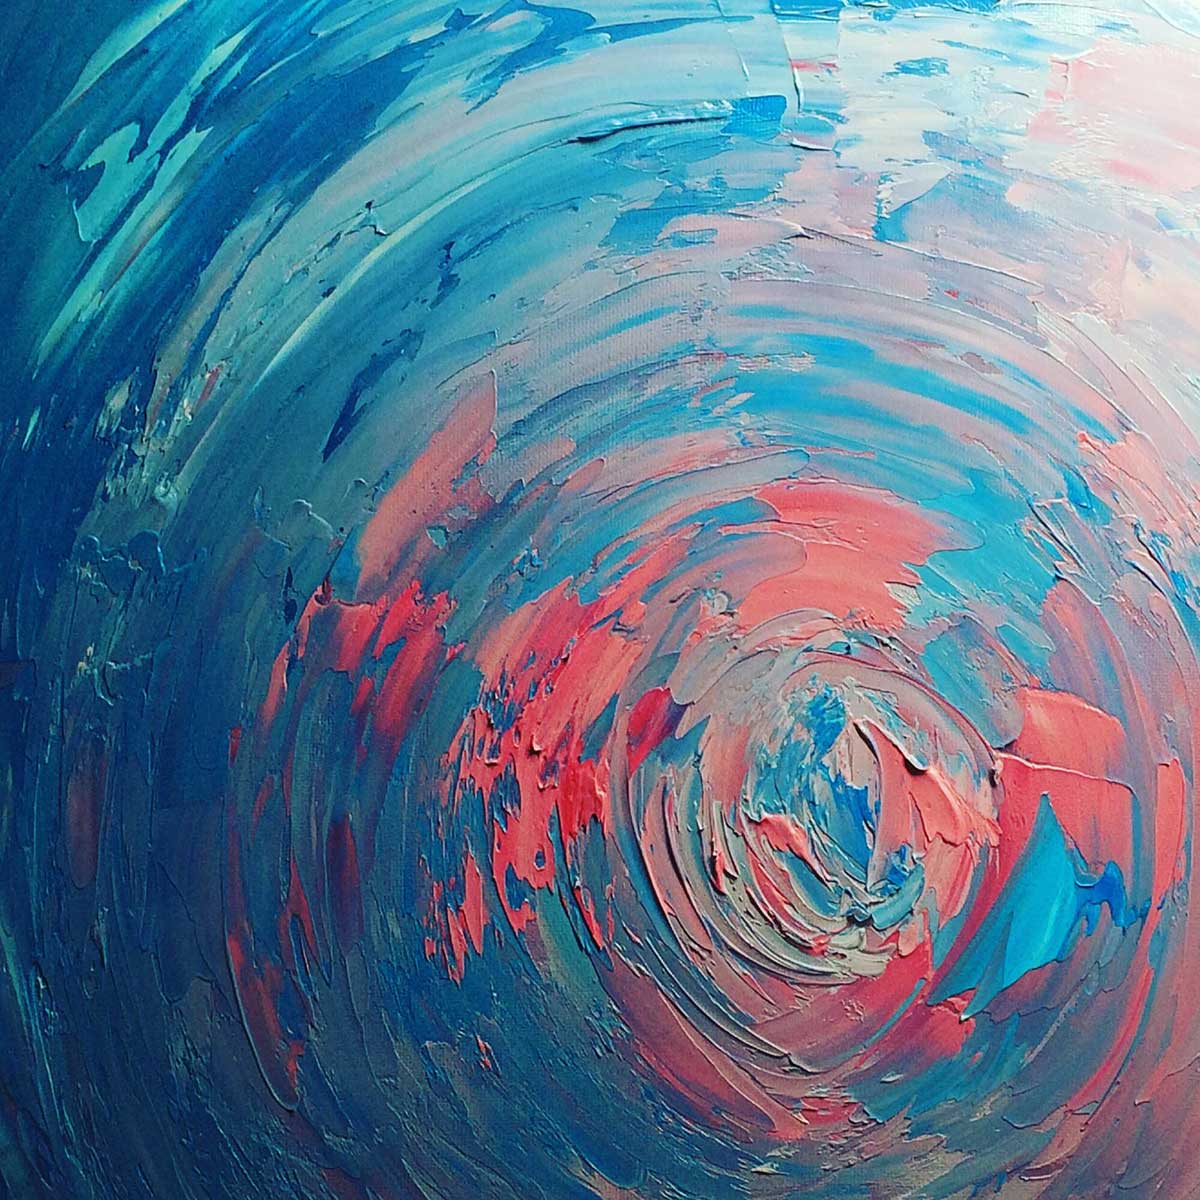 Merging, Blue and Pink Oil Abstract Painting: 30 in 30 Painting Challenge 2018, with Transgender Artist Sophie Lawson